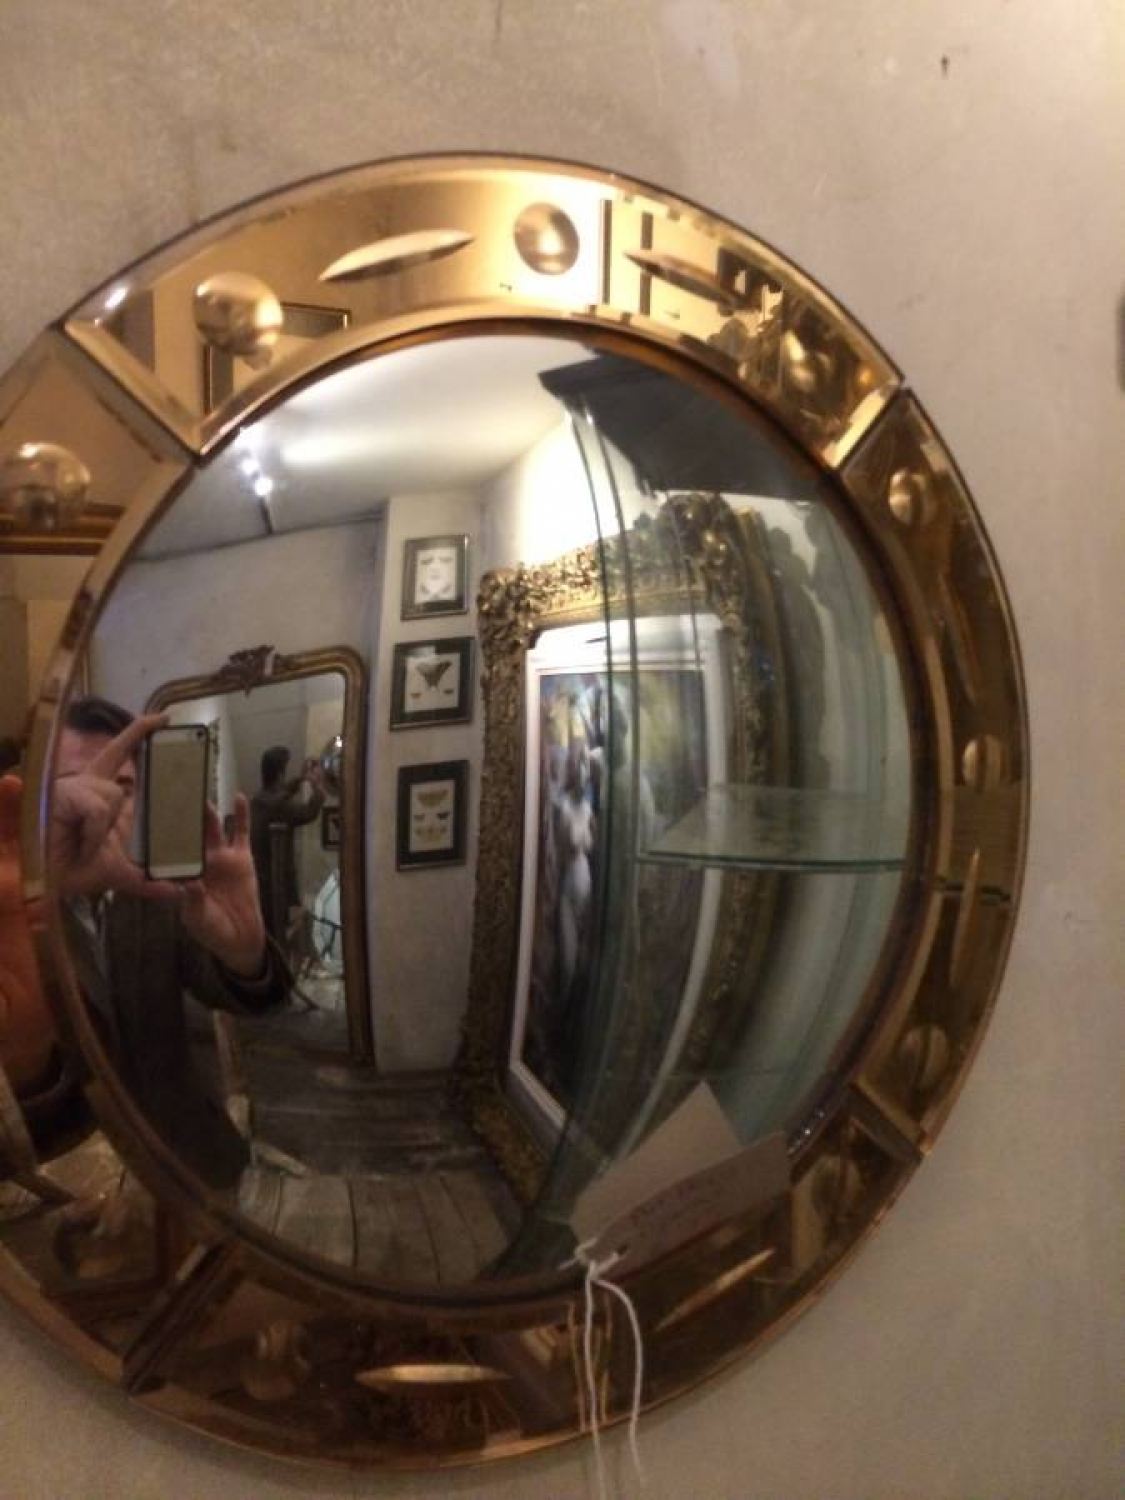 Art Deco Convex Mirror In Decorative Inside Convex Mirror Decorative (Image 5 of 15)